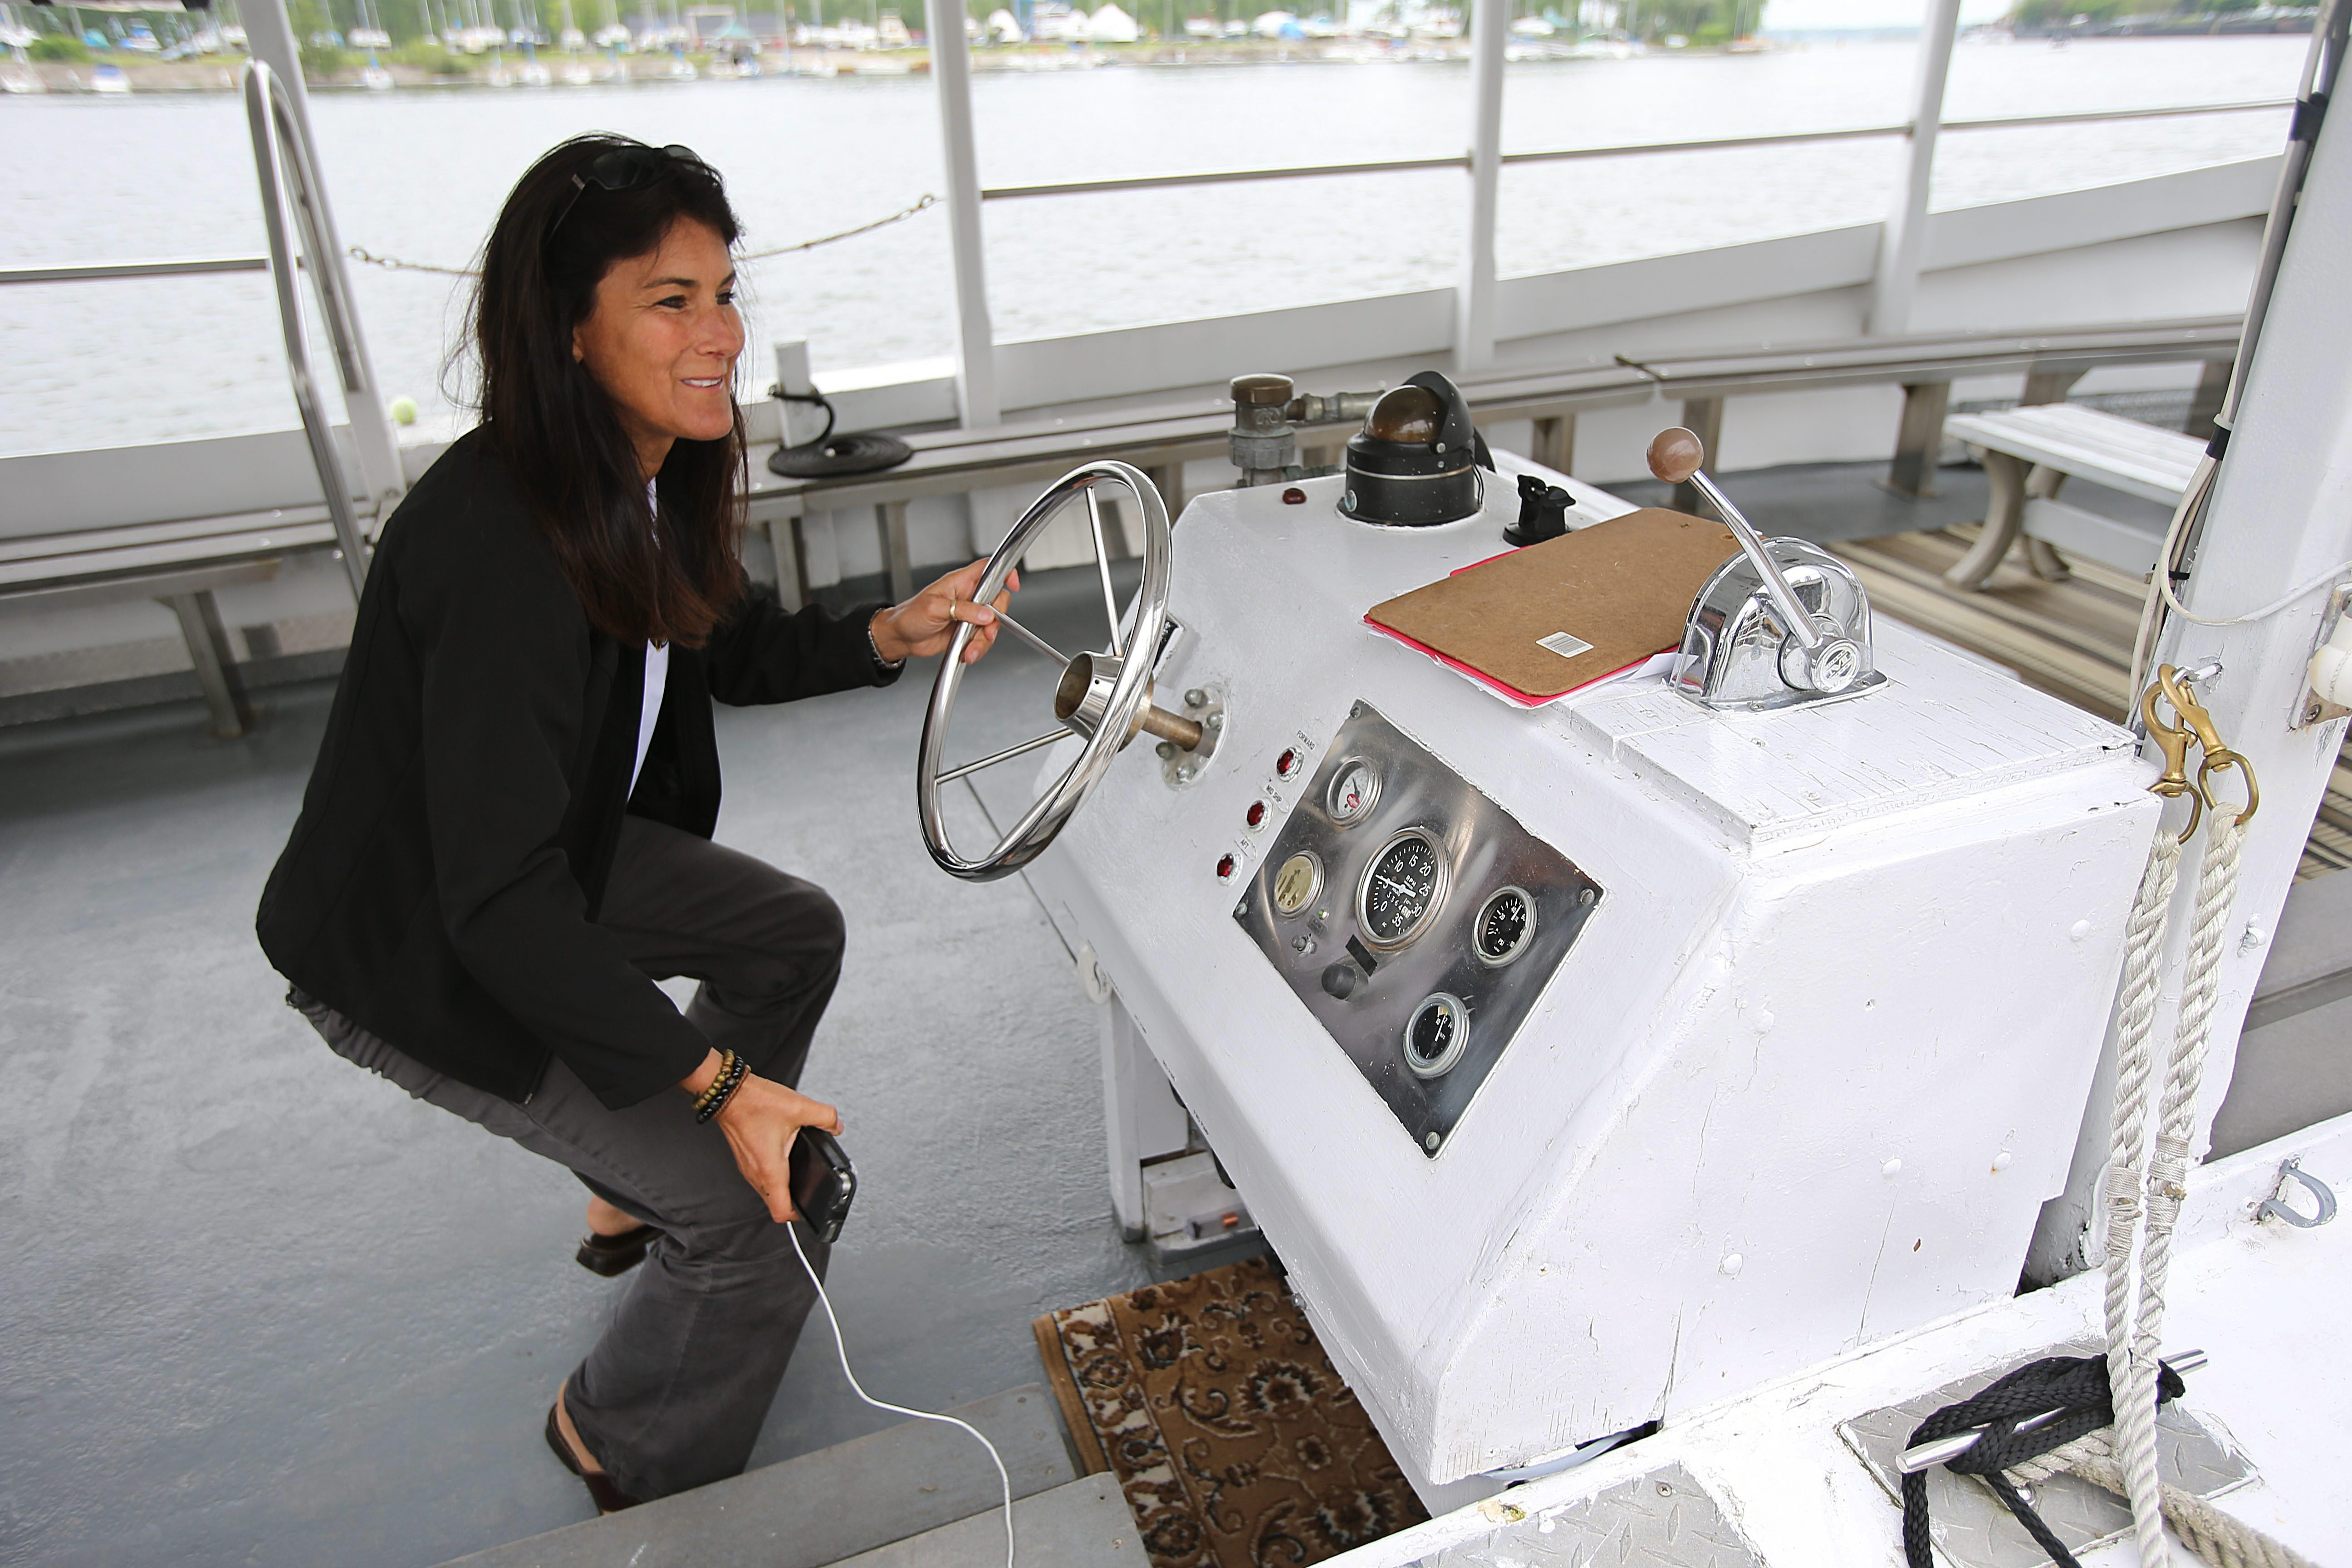 Robin Hoch, co-owner of Niagara River Cruises, enjoys being at the helm.